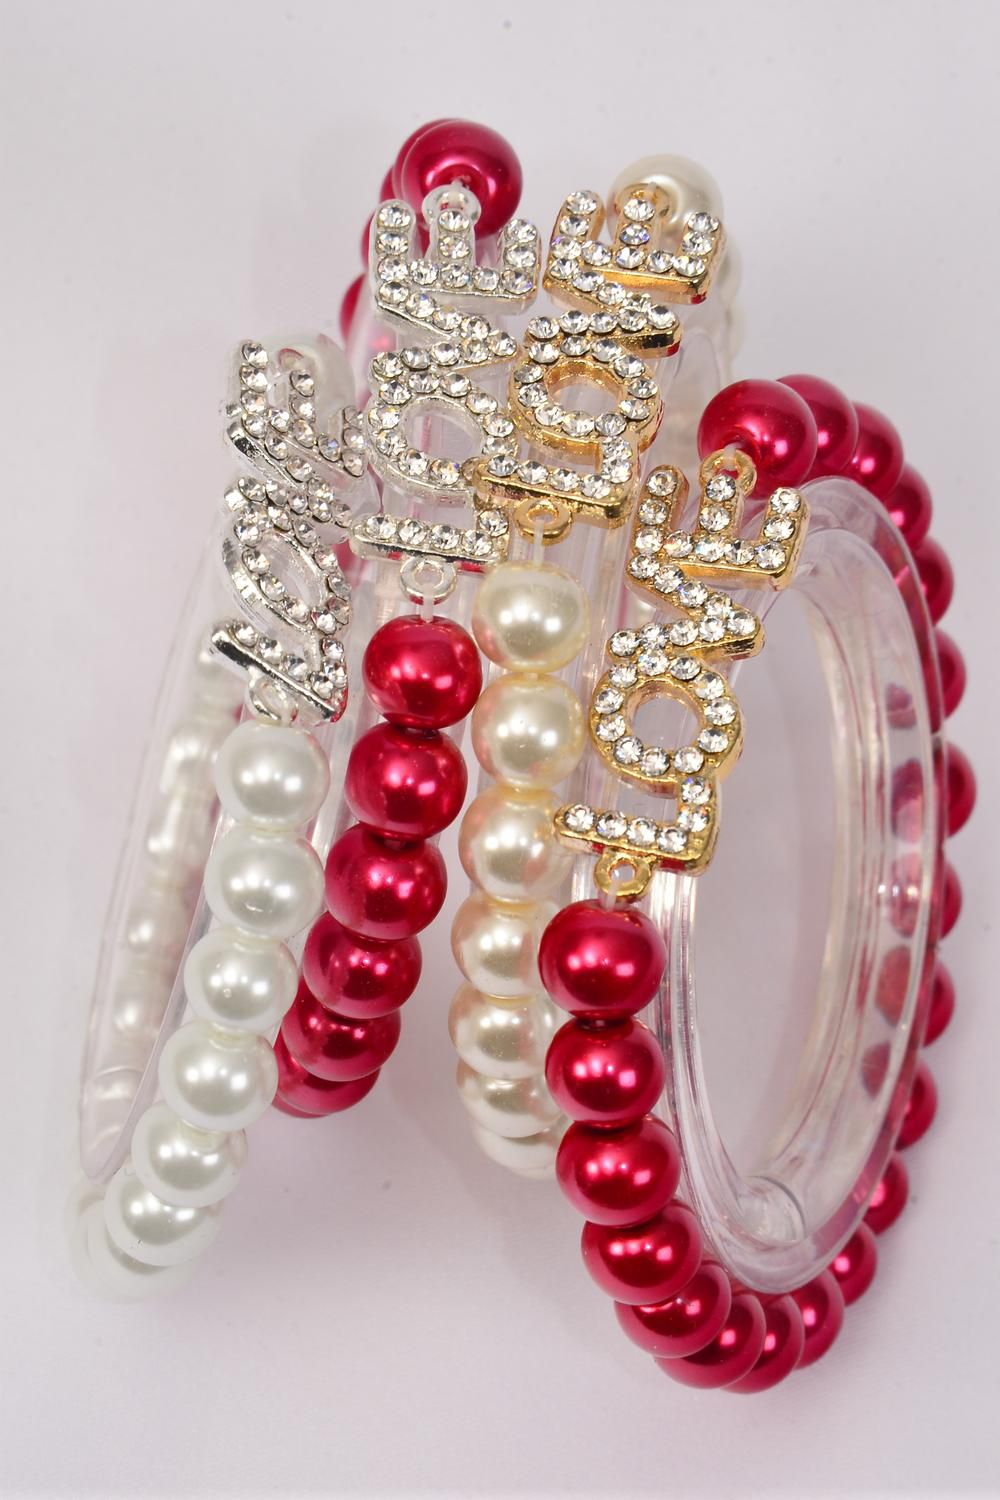 "Bracelet 10 mm Glass Pearl Rhinestone Love Word/sDZ **Stretch** Love Size-1""x 0.5"" Wide,3 of each Color Asst,Hang Tag & OPP bag & UPC Code"